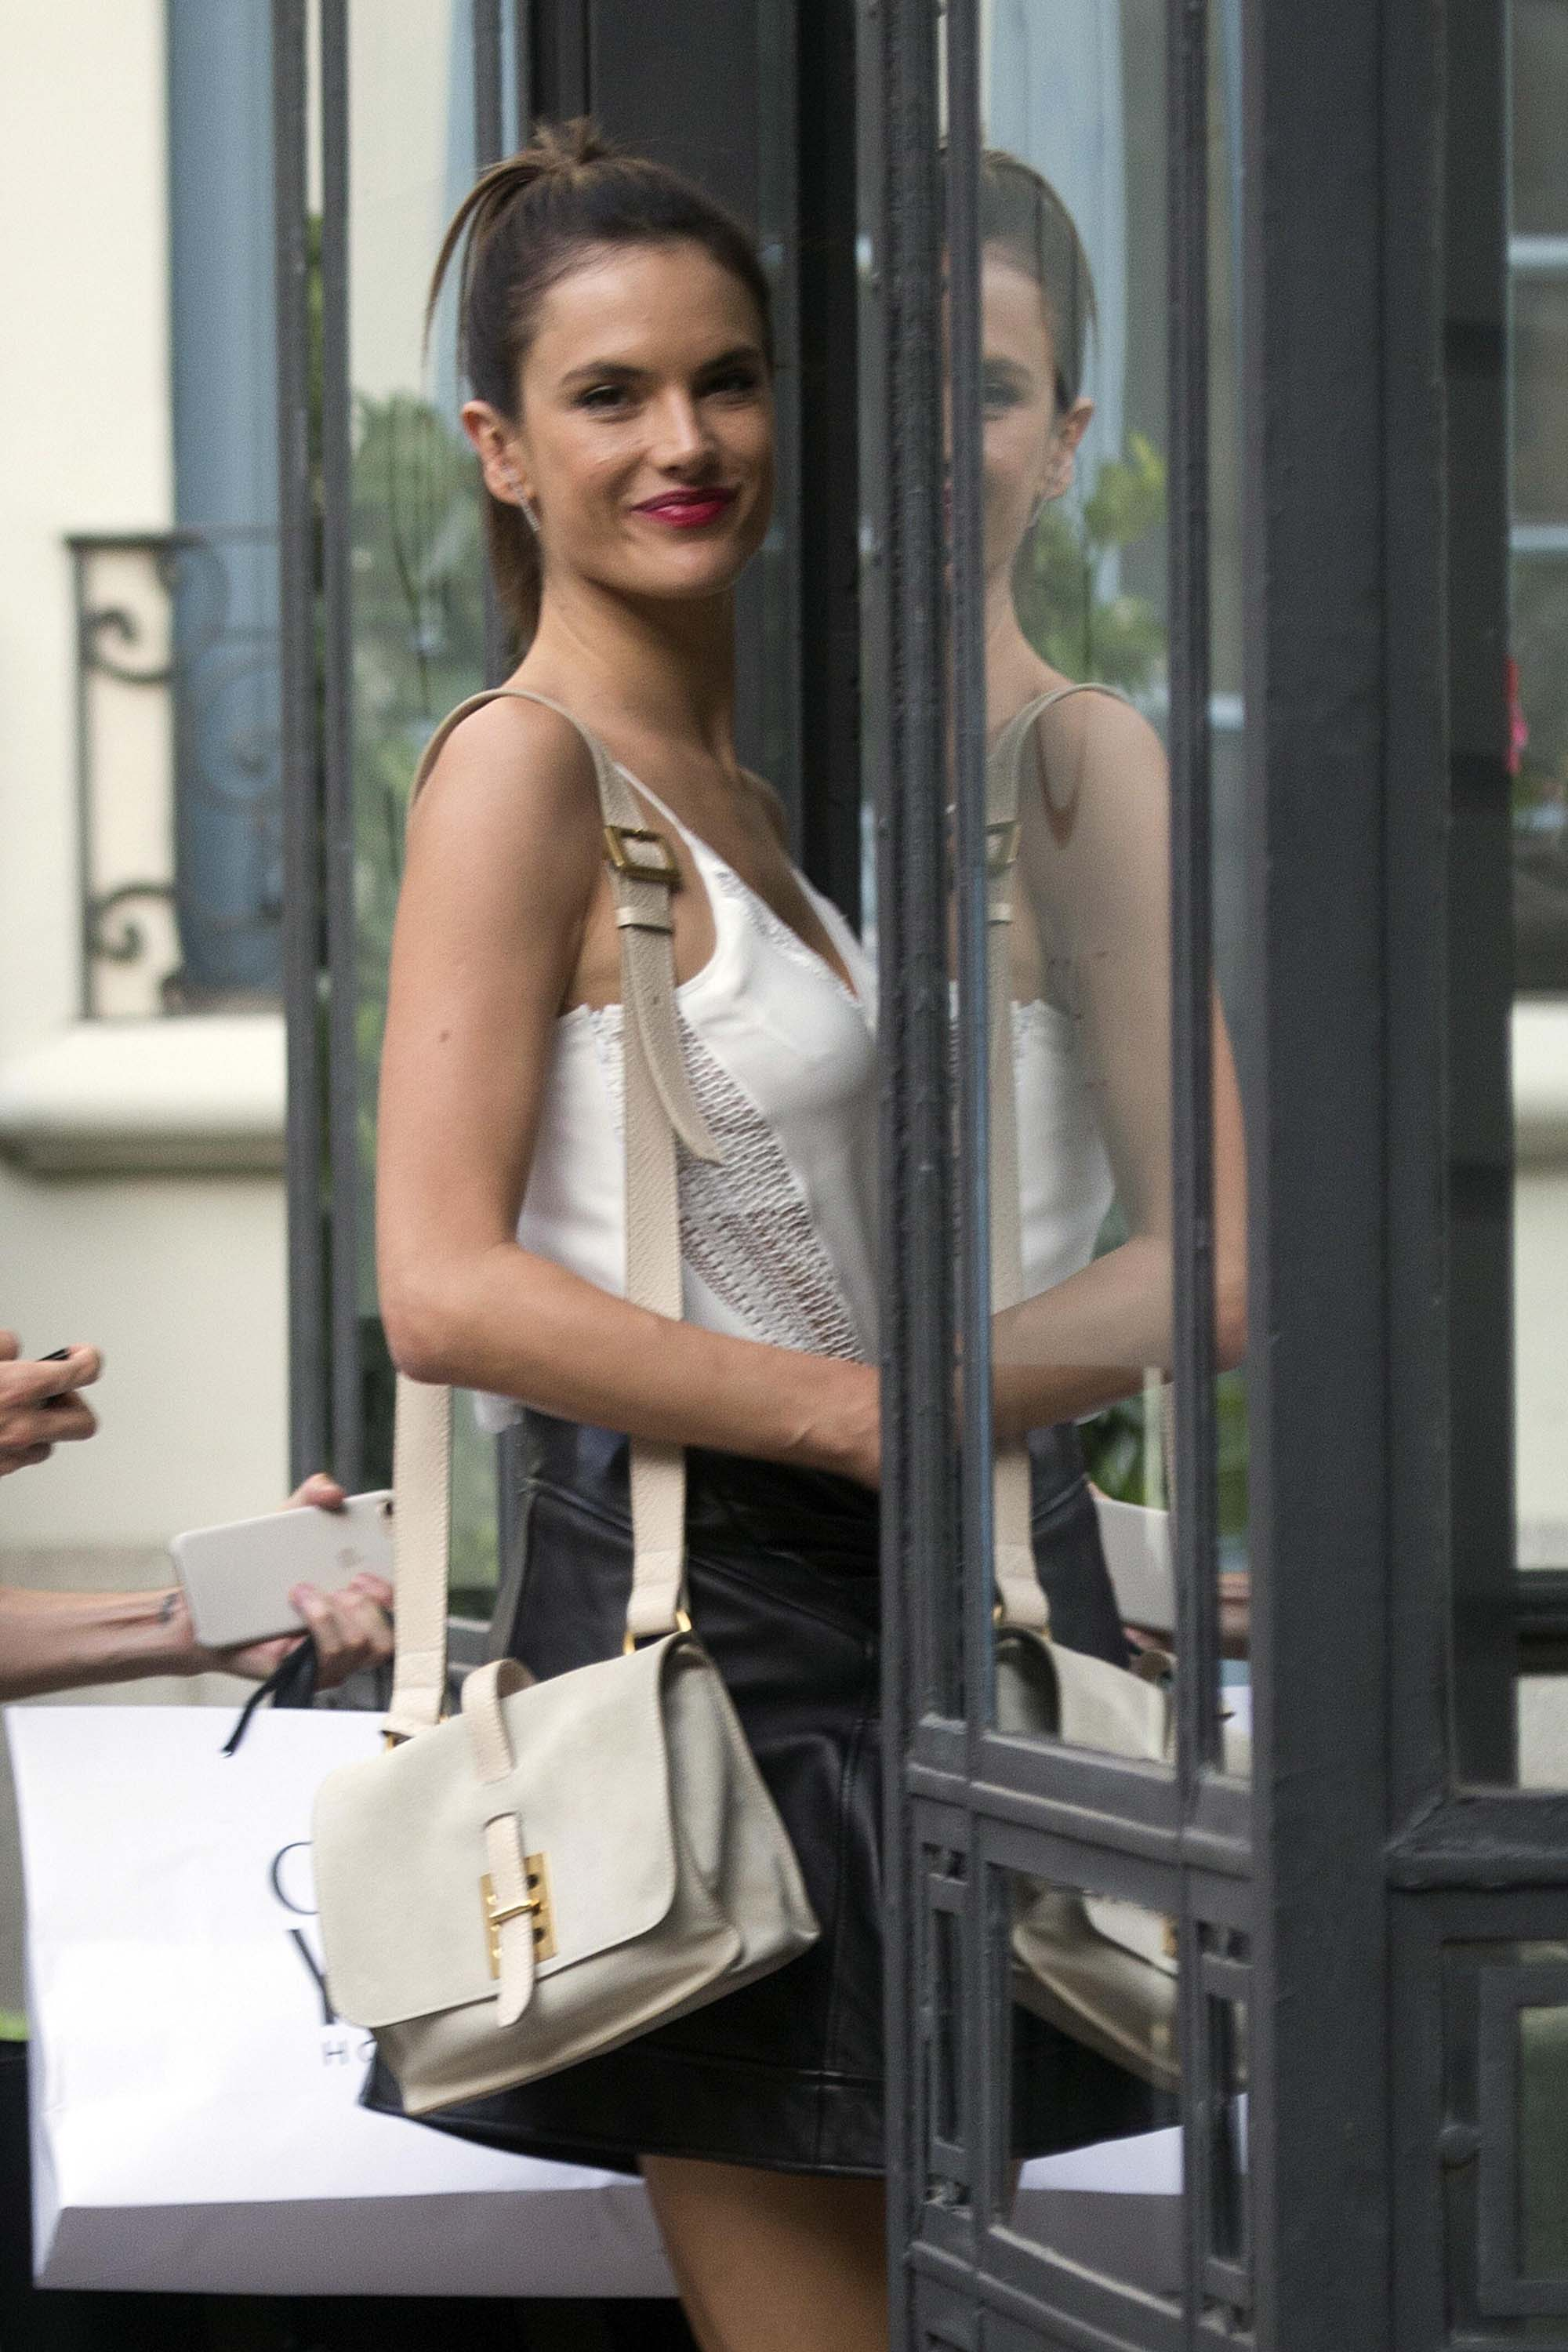 Alessandra Ambrosio arriving at her hotel